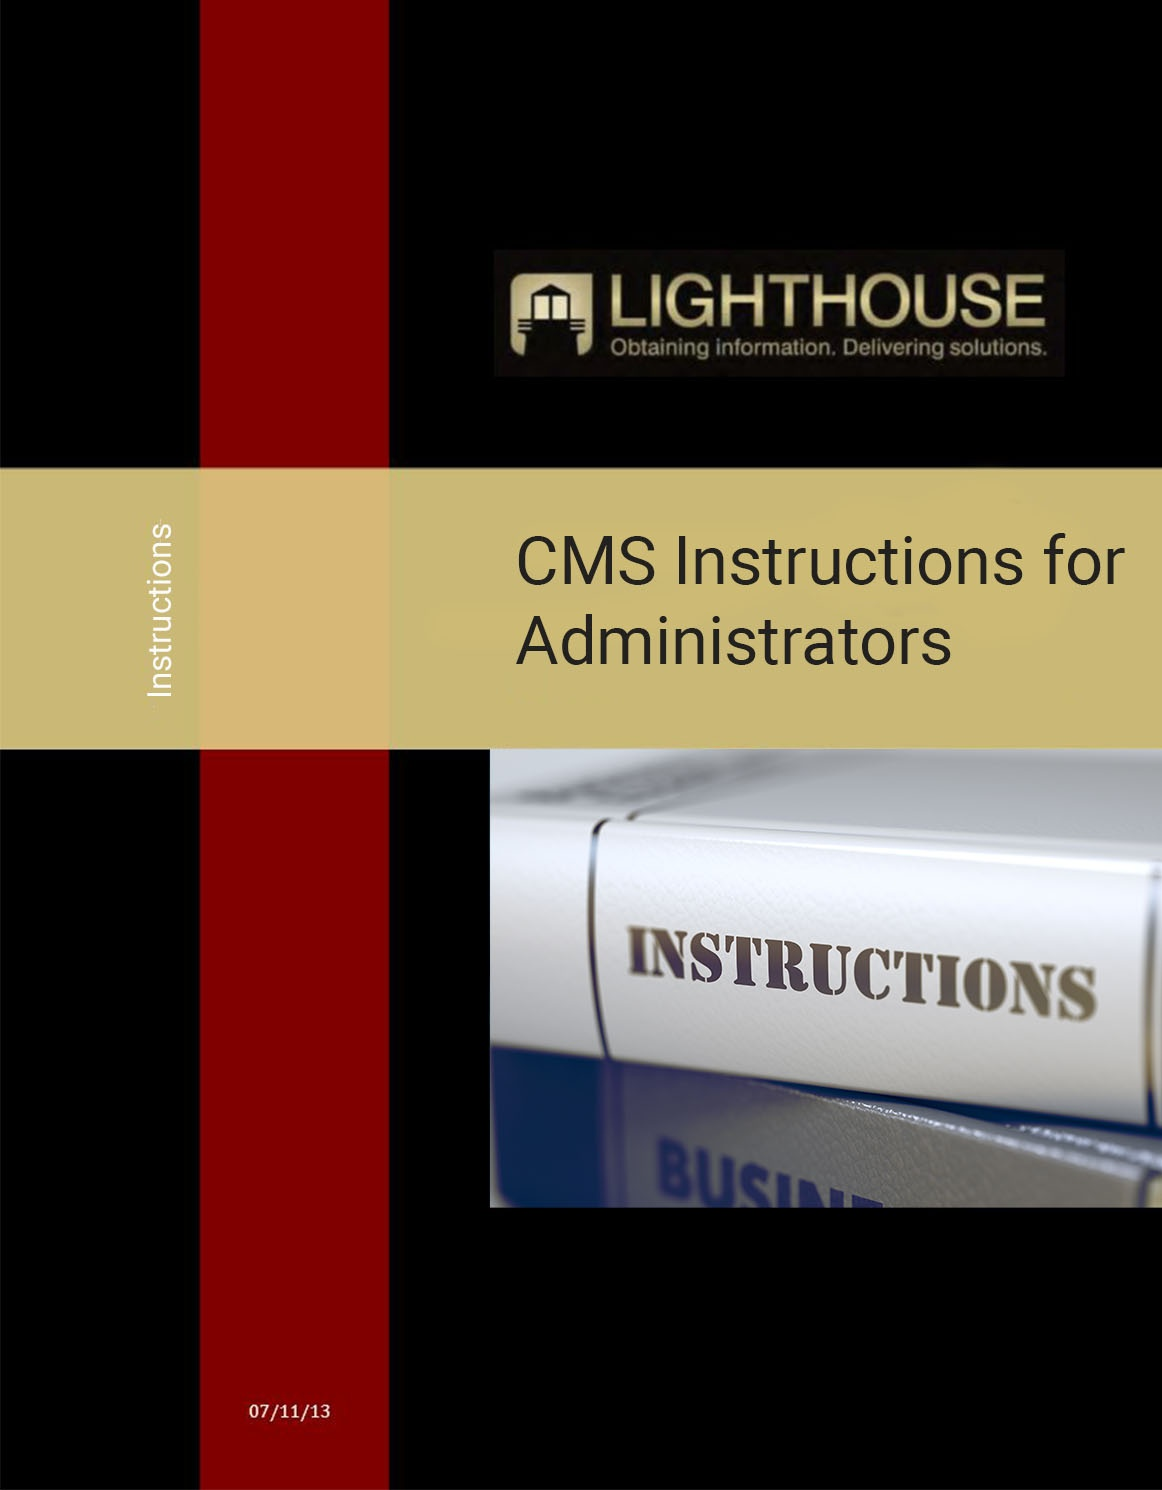 CMS Instructions for Administrators